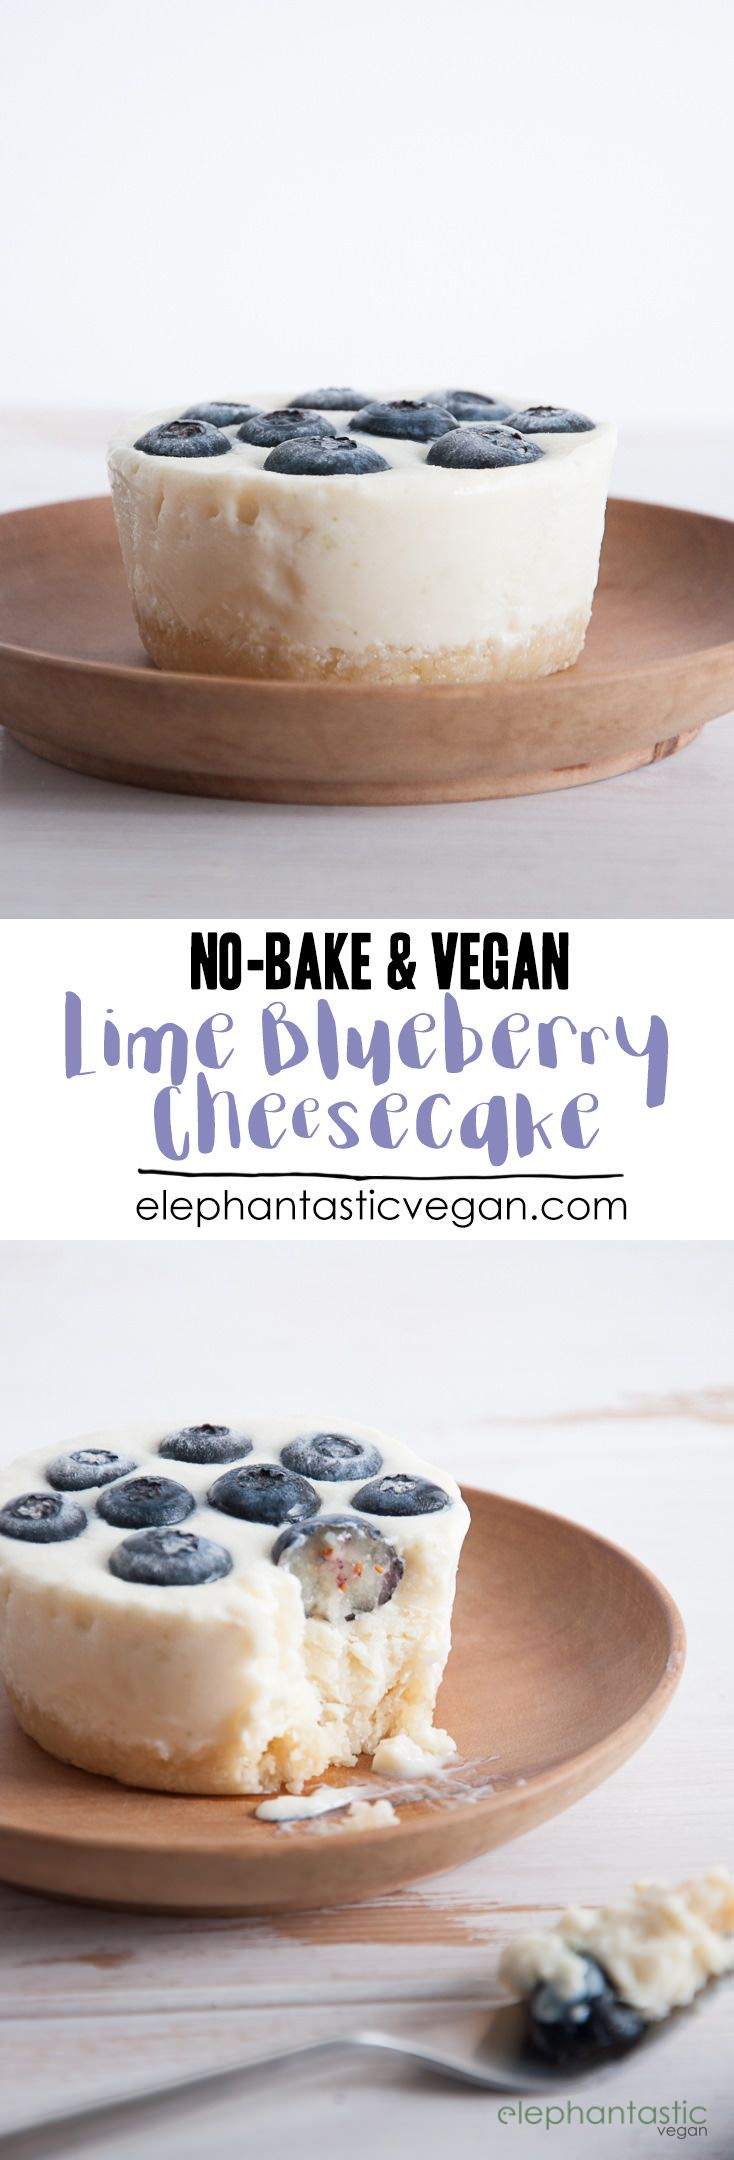 No-Bake Lime Blueberry Cheesecake | ElephantasticVegan.com